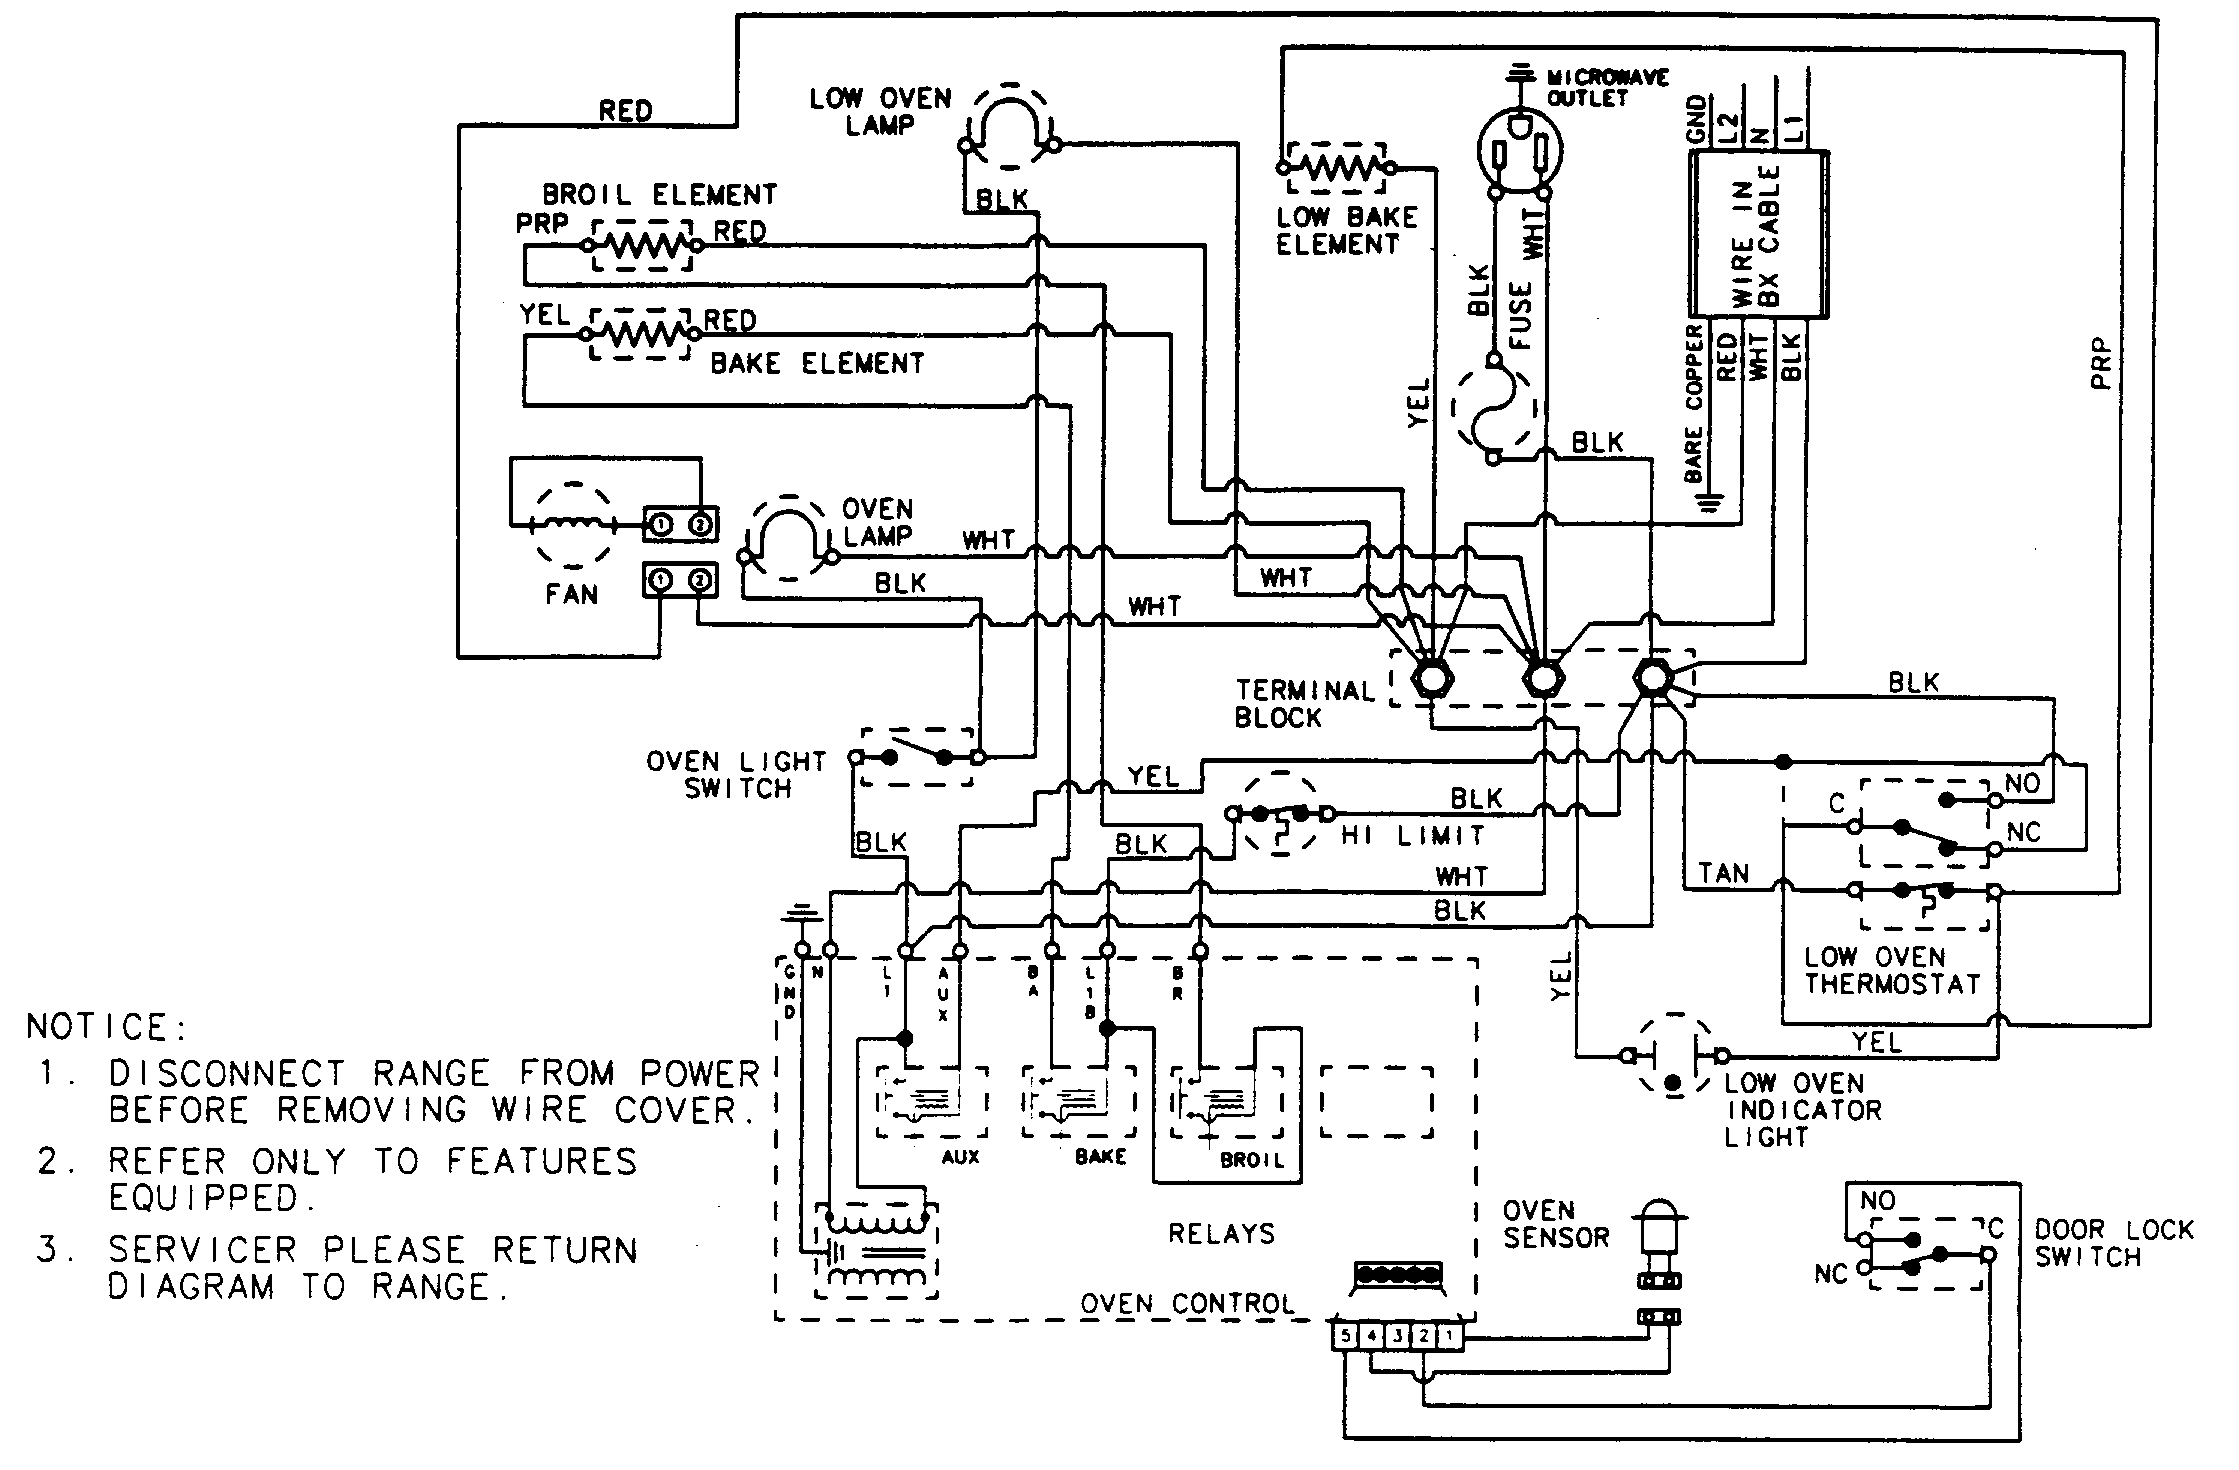 contr gas oven wiring diagram box wiring diagramgas oven wiring diagram electrical wiring diagrams basic oven wiring diagram contr gas oven wiring diagram